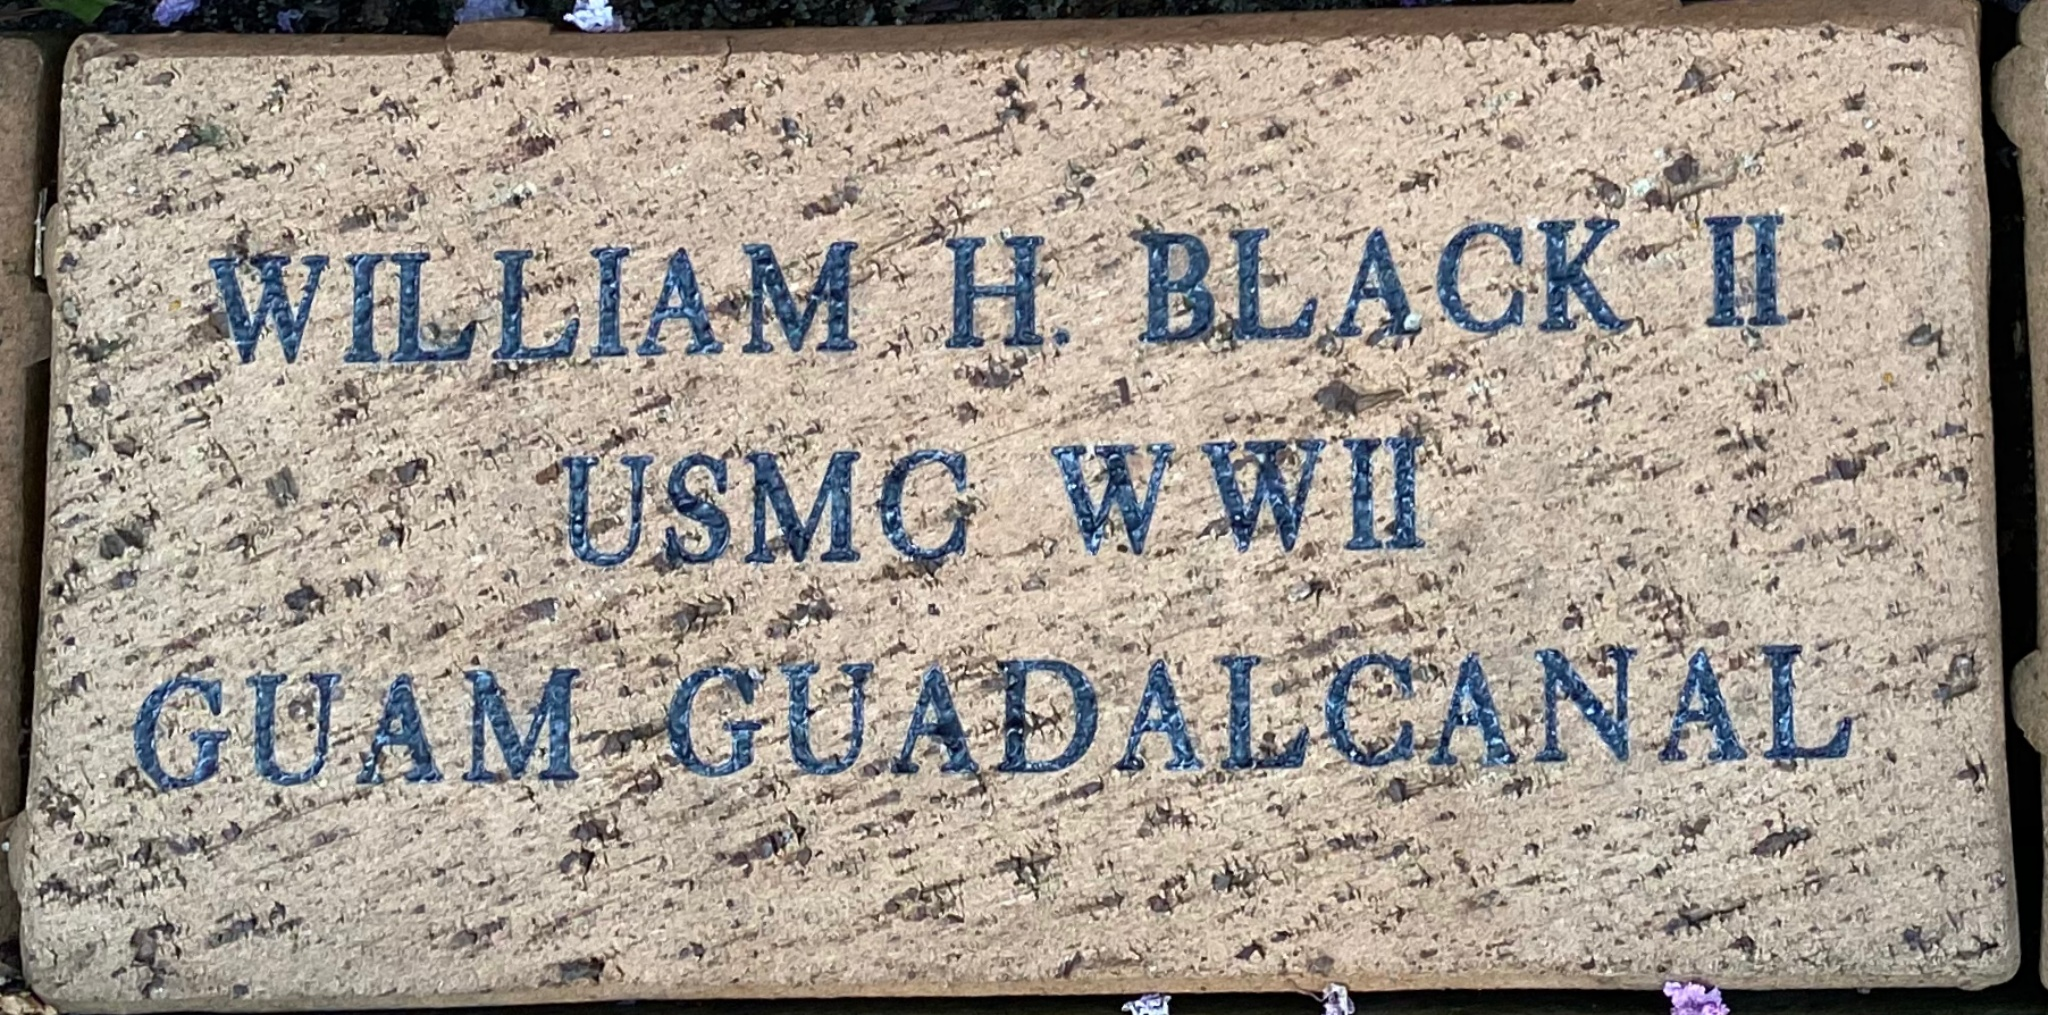 WILLIAM H. BLACK II USMC WWII GUAM GUADALCANAL